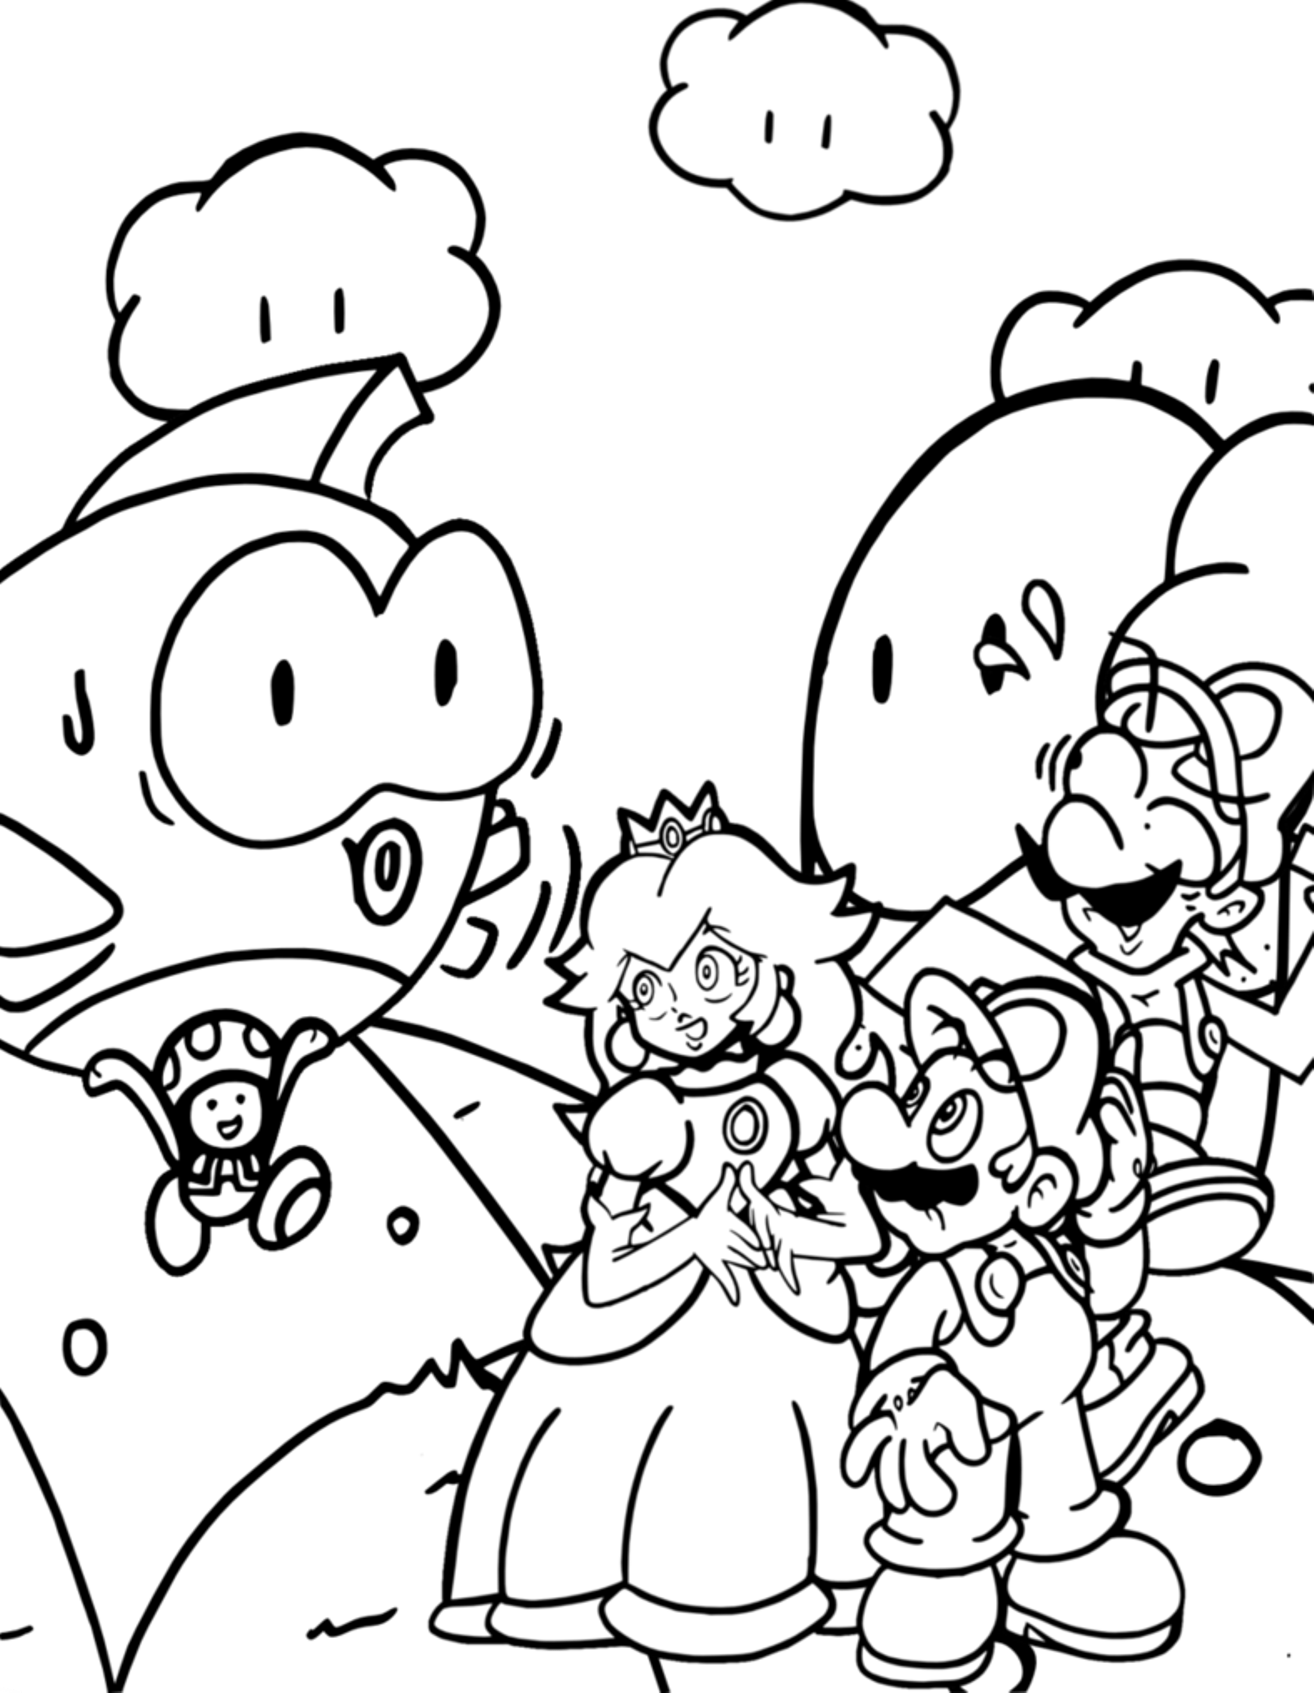 1314x1693 Super Mario Galaxy Coloring Pages To Print Preschool For Cure Draw